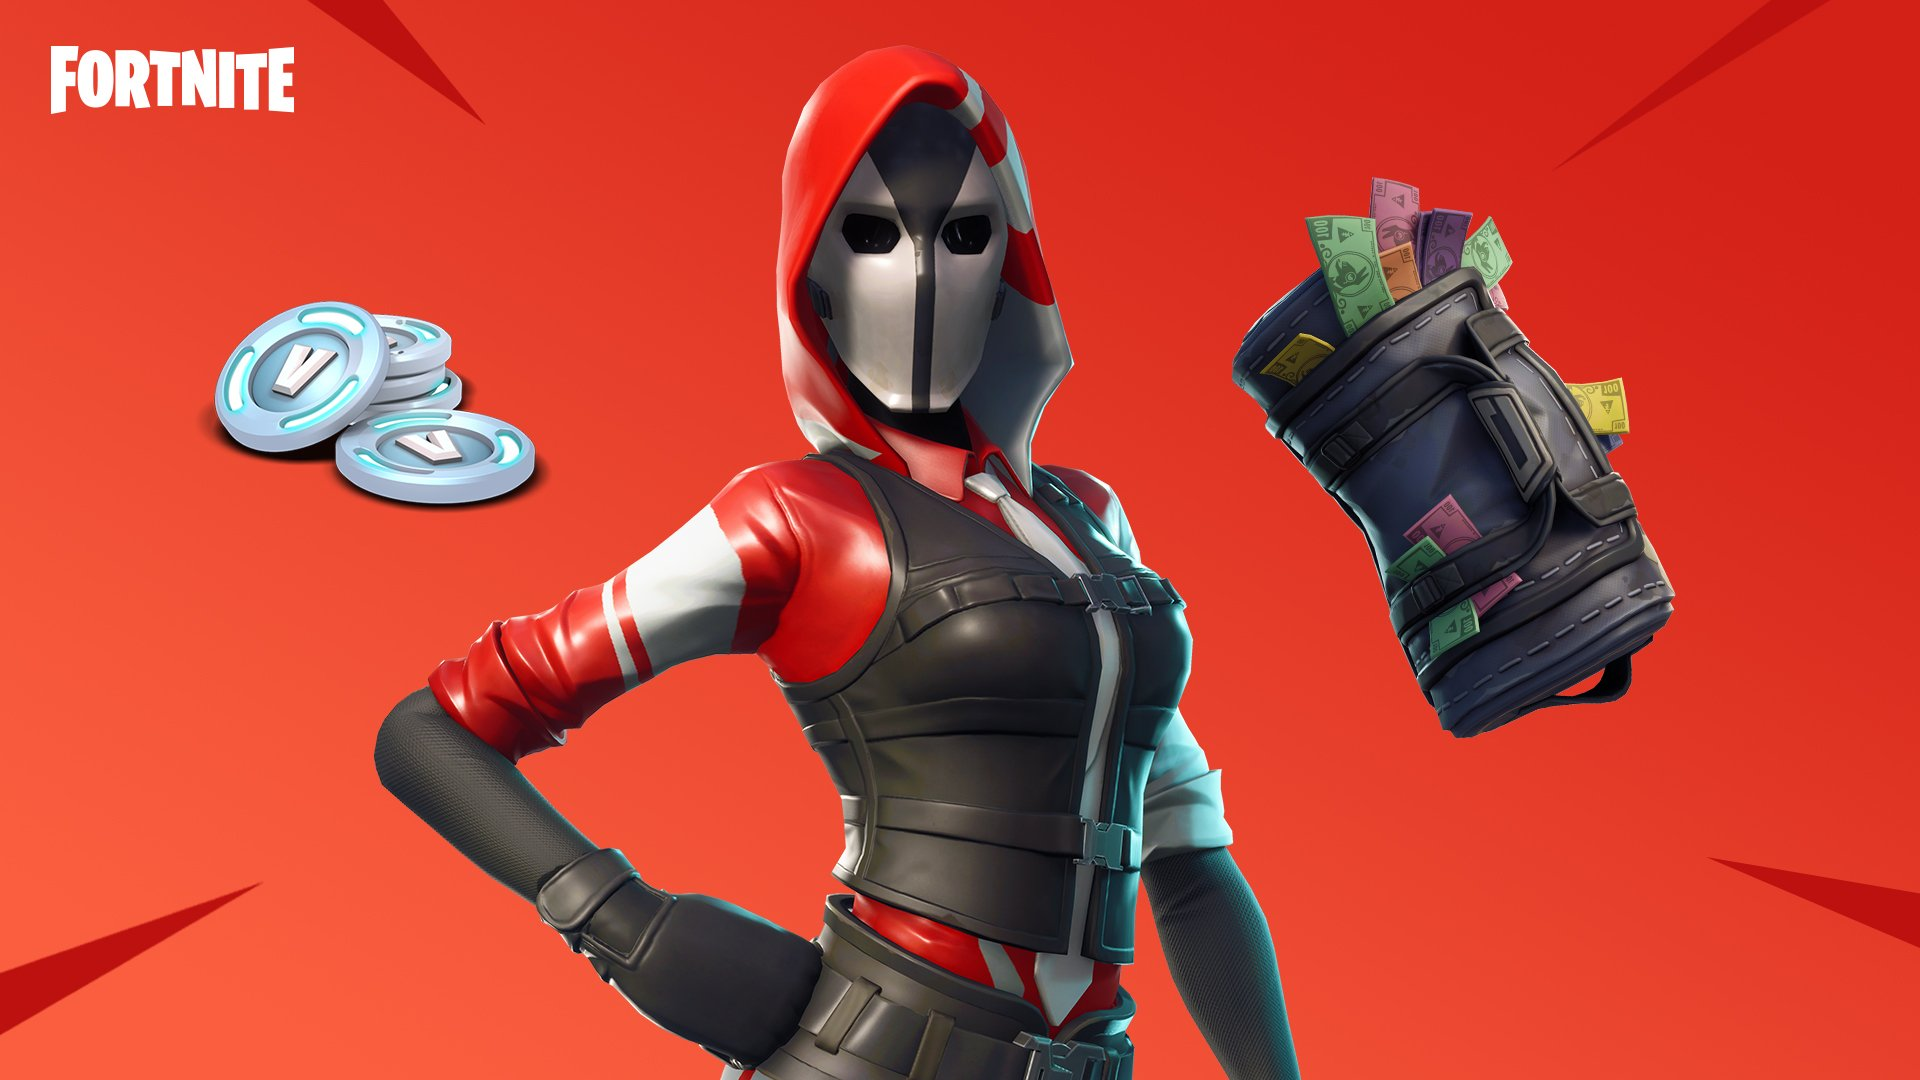 Fortnite The Ace Outfits Fortnite Skins